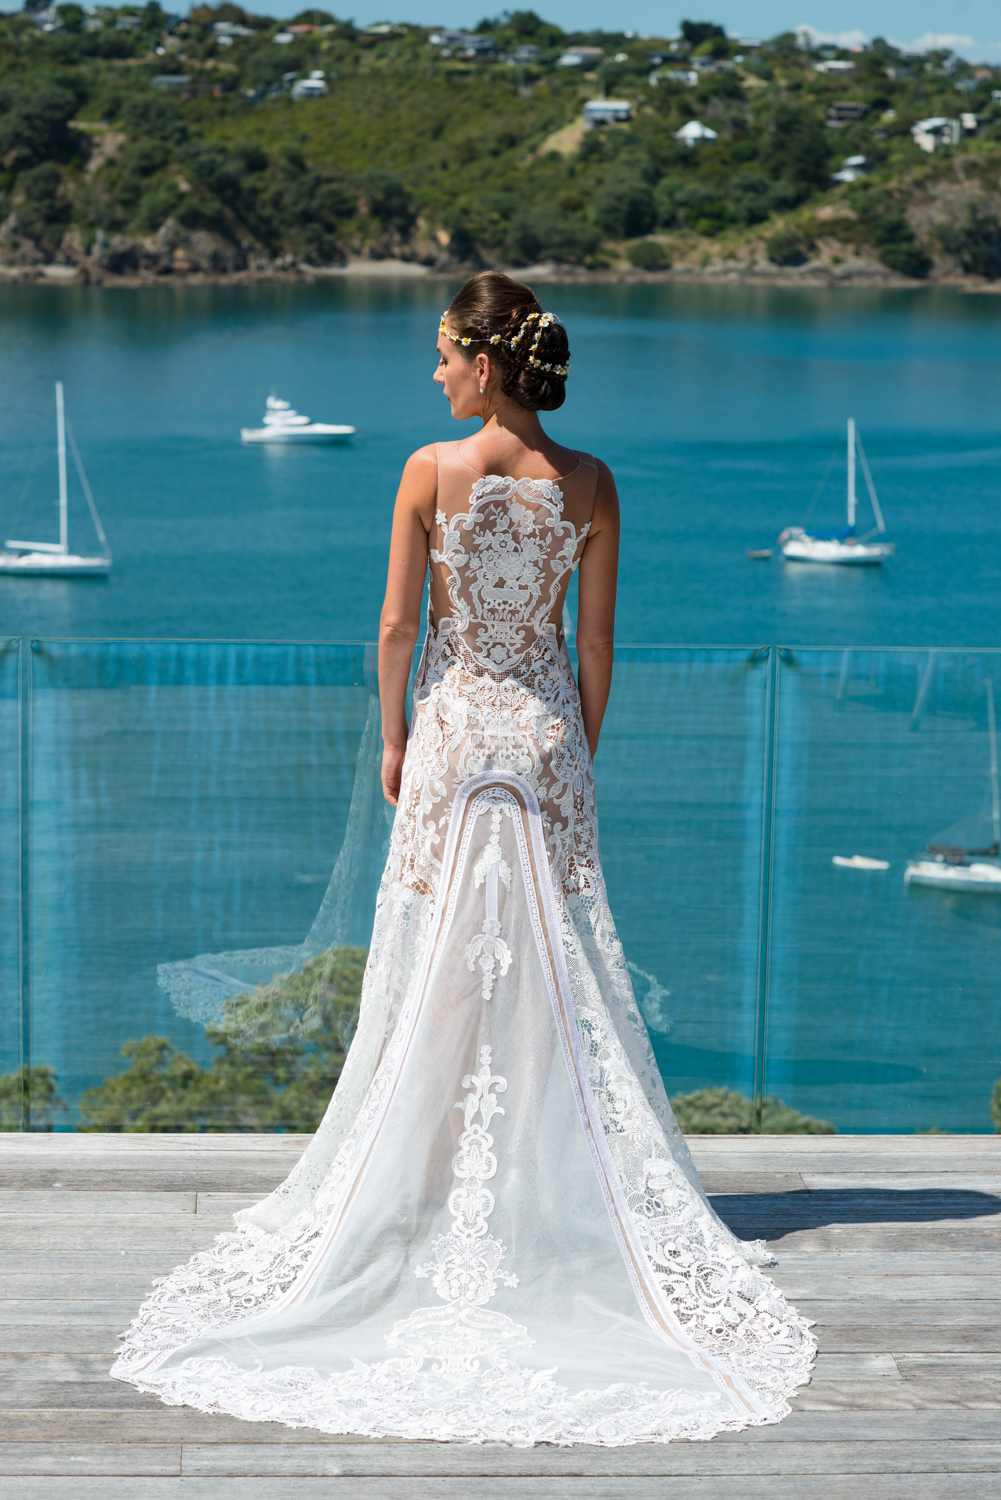 On the back is a floral vase in the design, representing the brides passion and career.